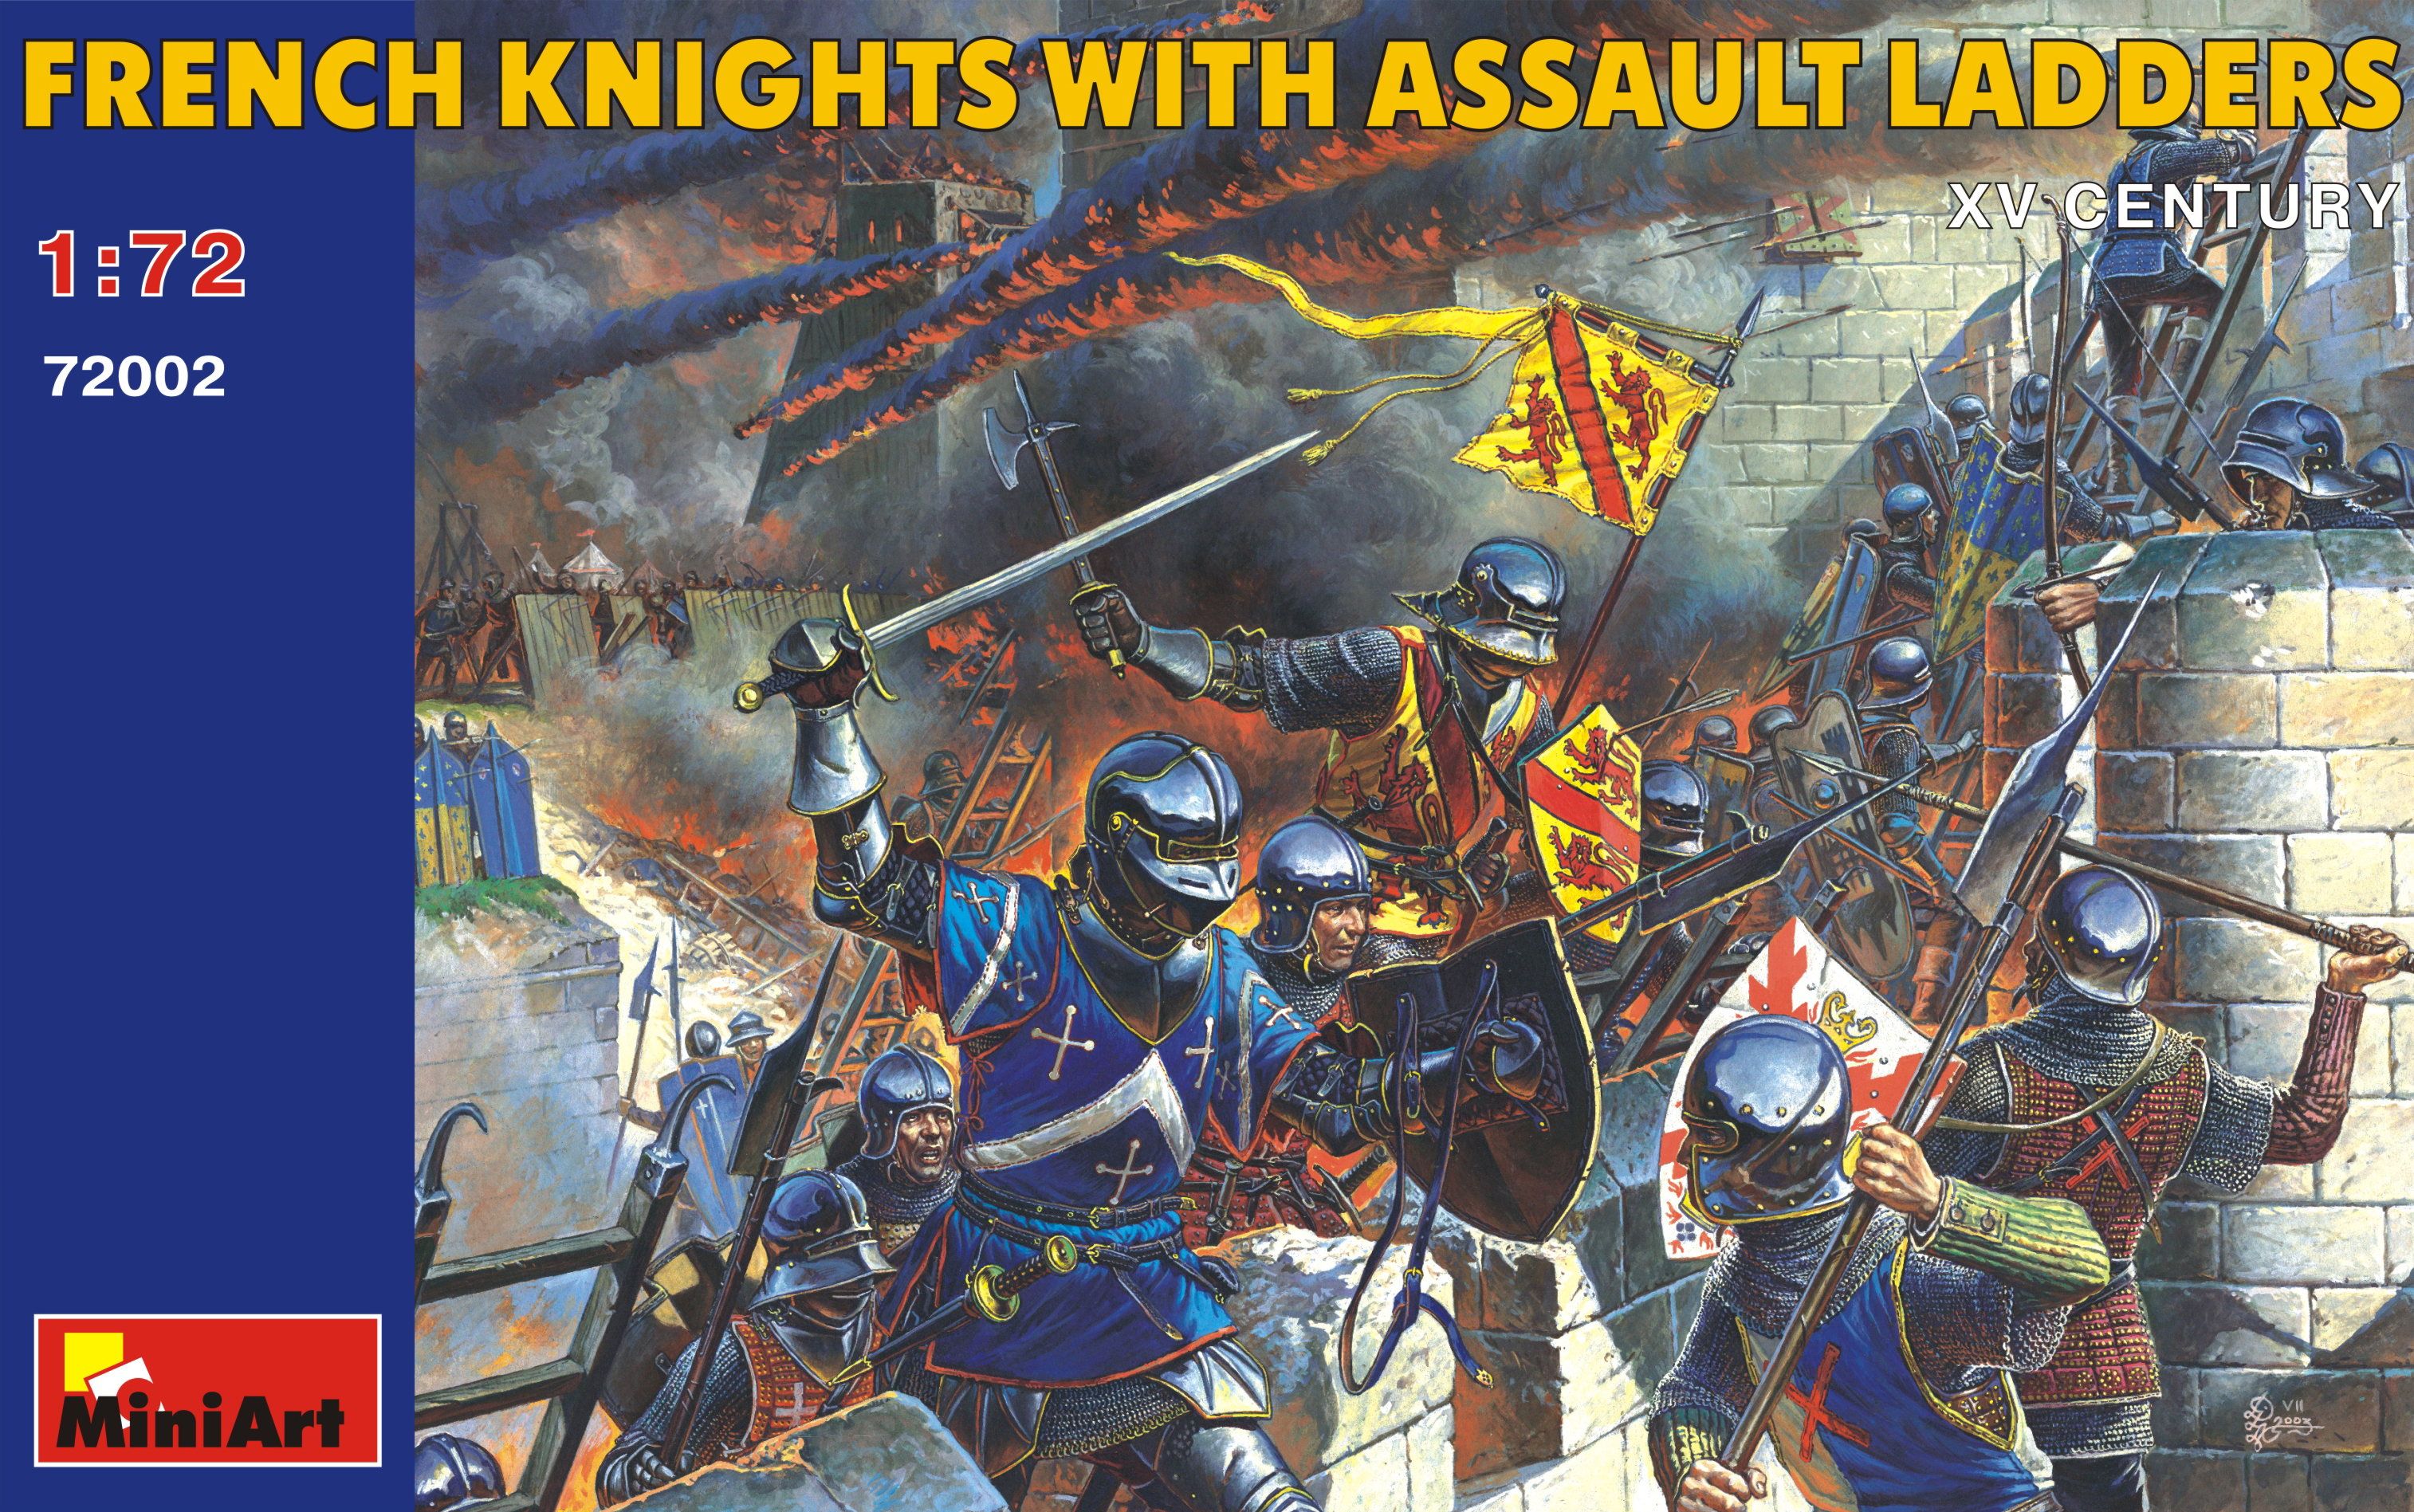 72002 FRENCH KNIGHTS WITH ASSAULT LADEERS XV CENTURY